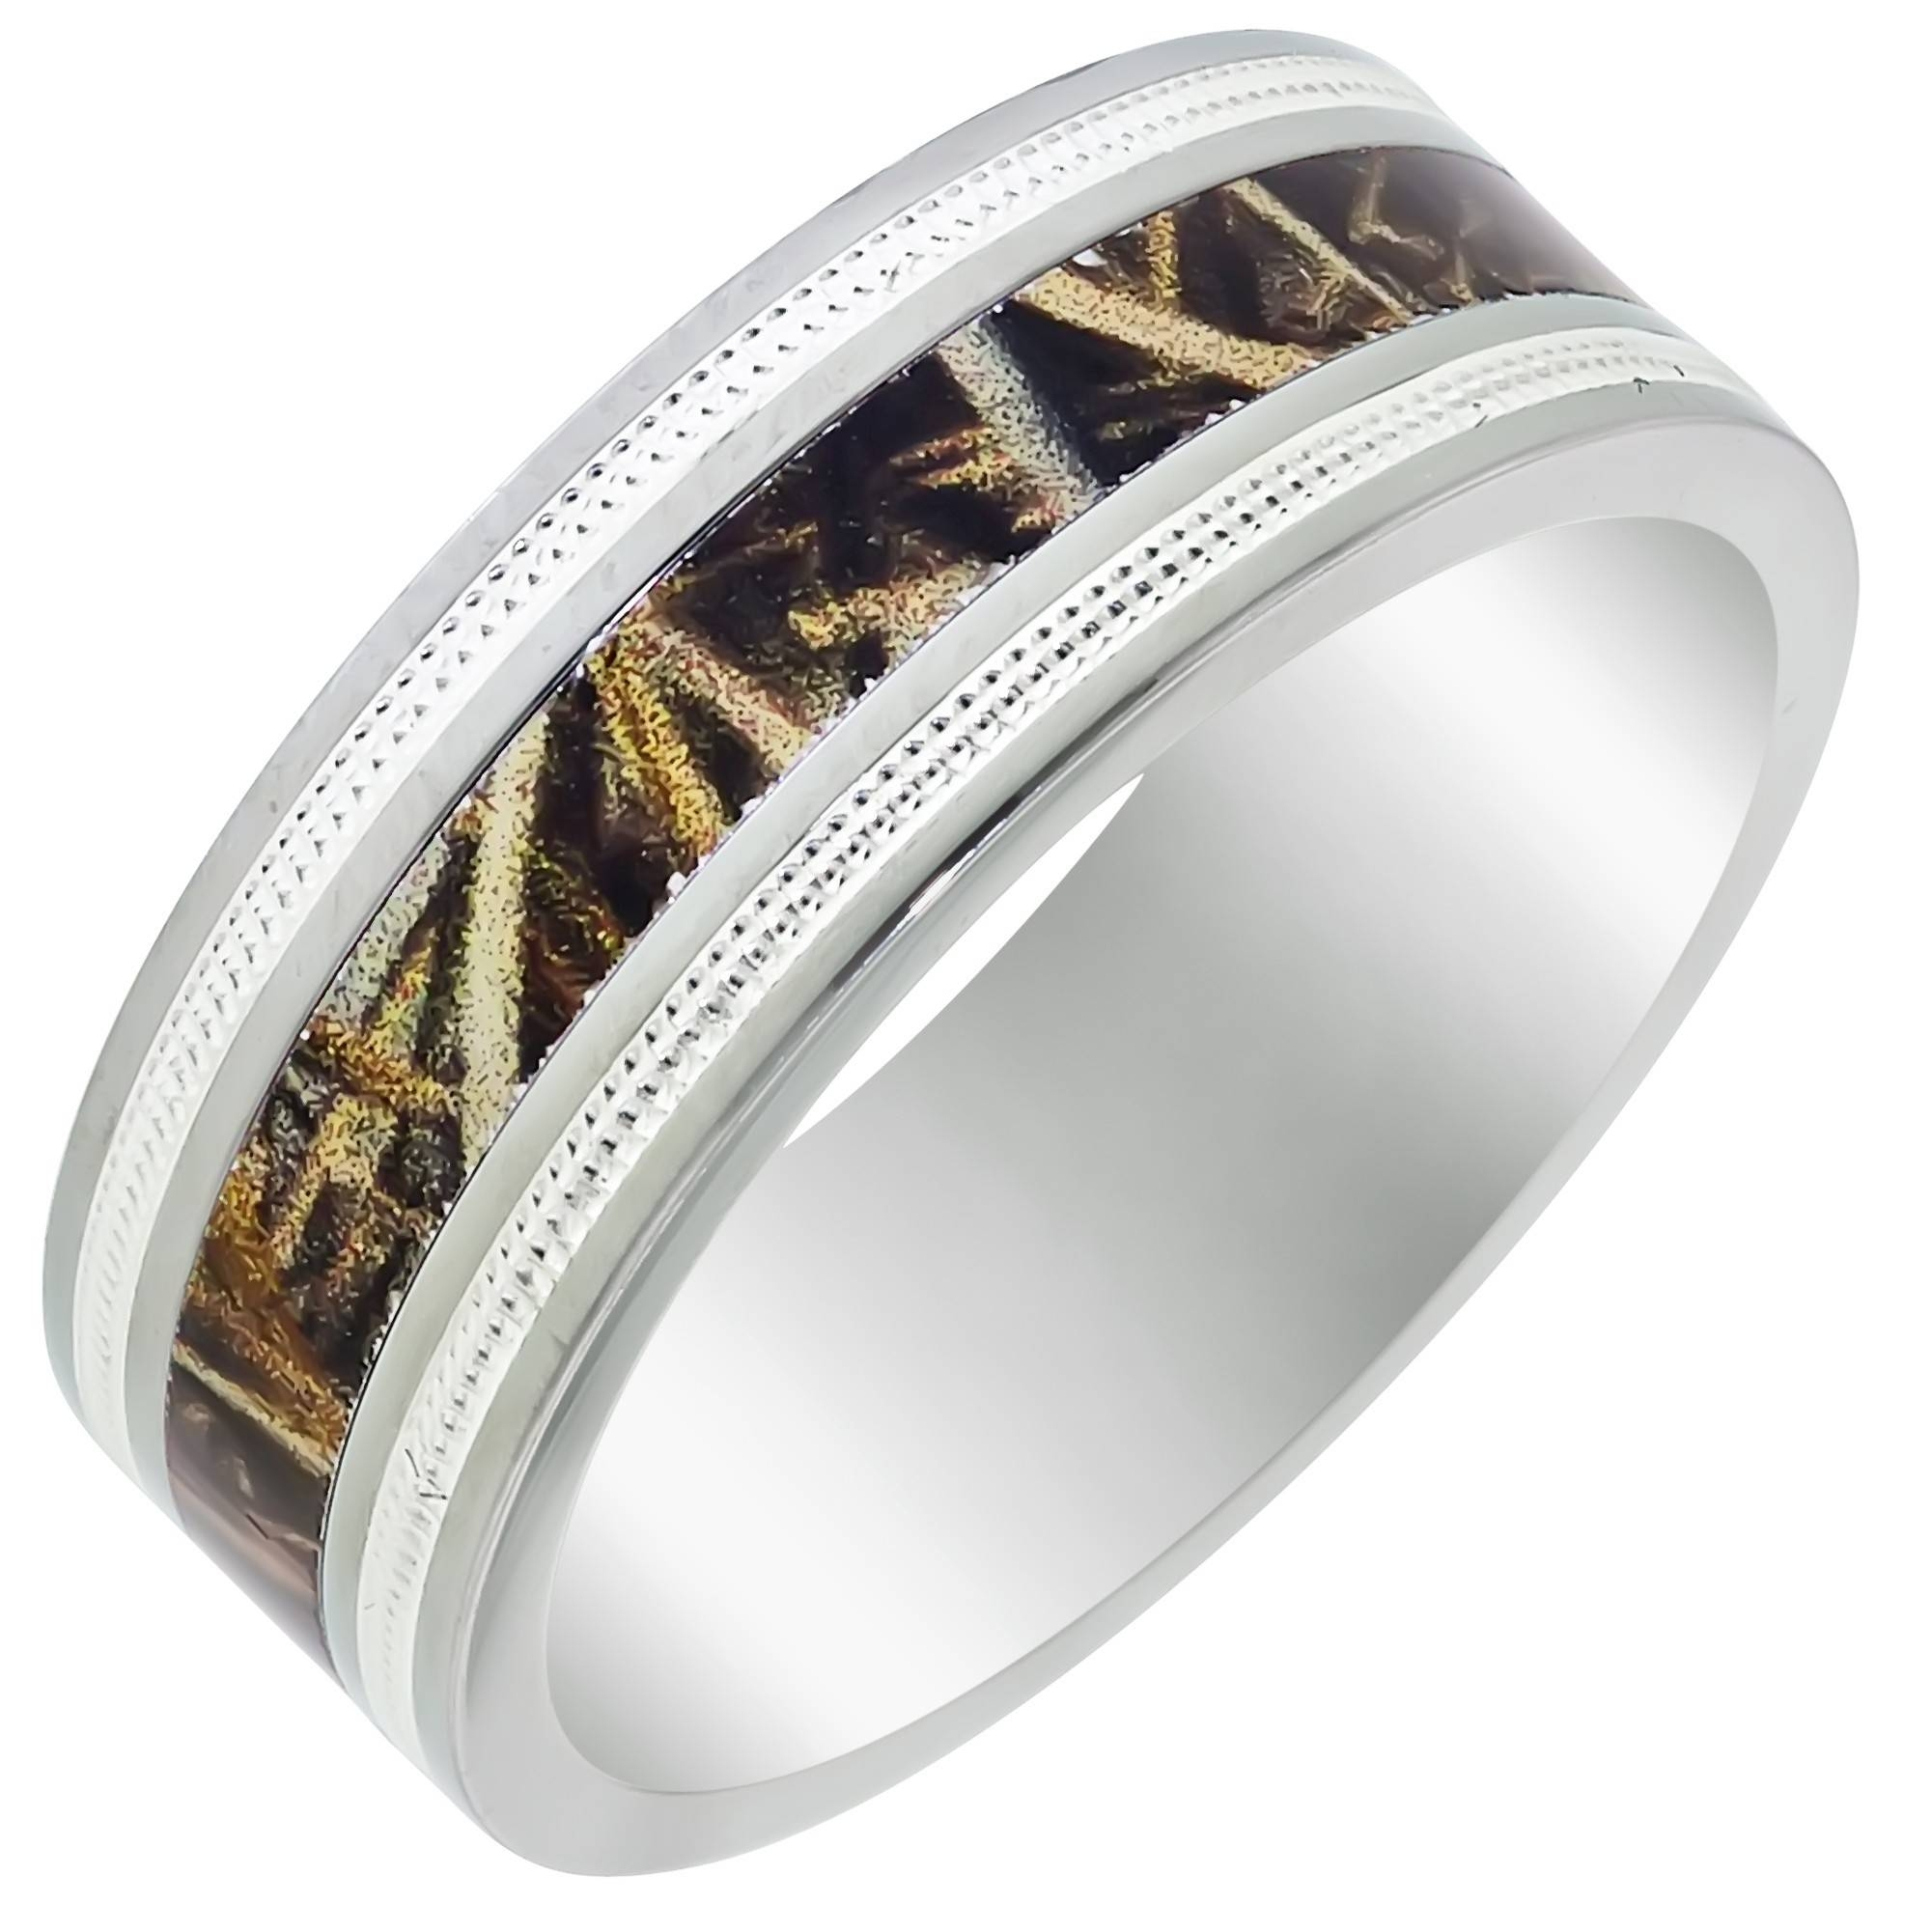 Scottish Wedding Rings For Men New Mens Titanium Camo Wedding For Scottish Wedding Bands (View 4 of 15)